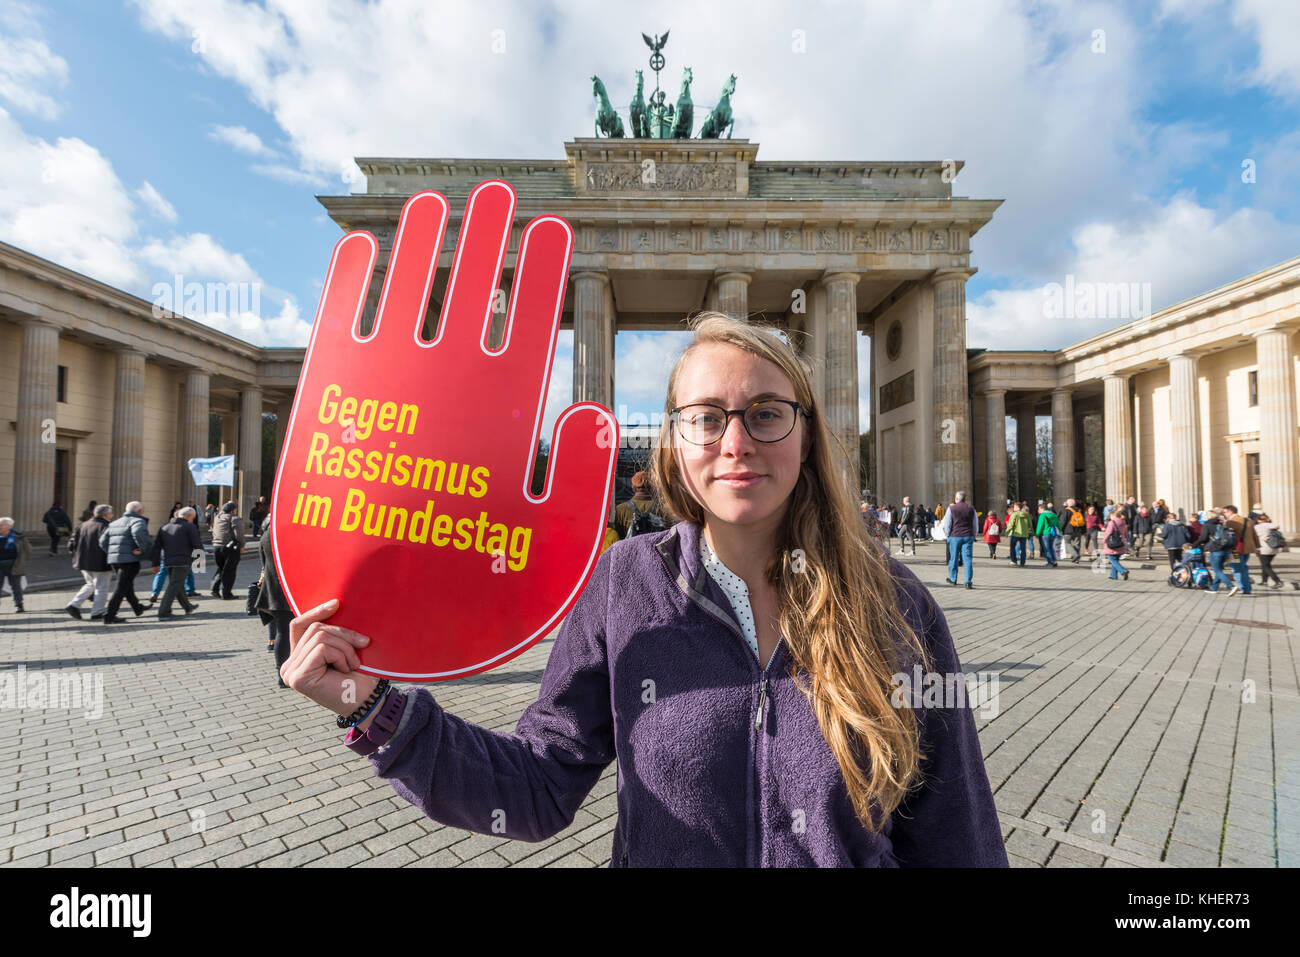 Student with shield against racism in the Bundestag, Anti AFD-Demo, Brandenburg Gate, Berlin, Germany - Stock Image